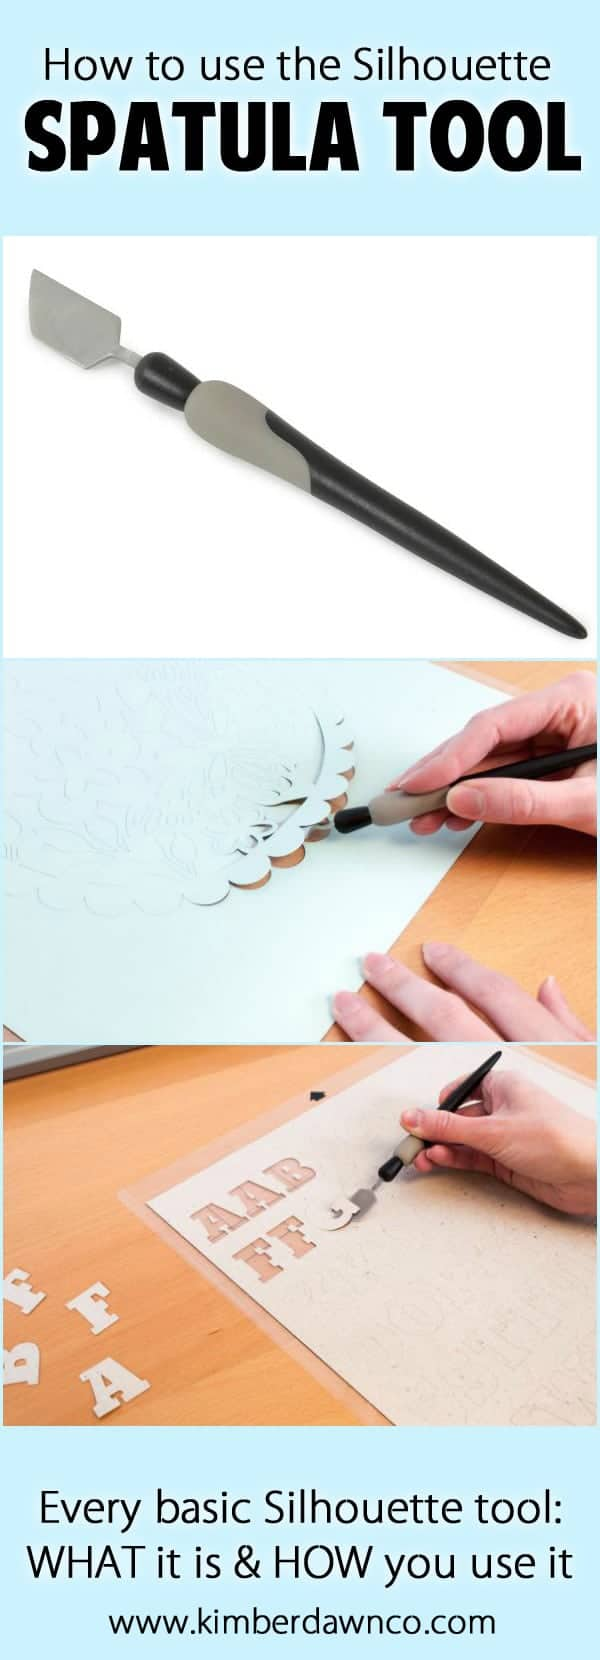 Silhouette Spatula Tool: How to use every basic Silhouette Tool - Click here to see them all!